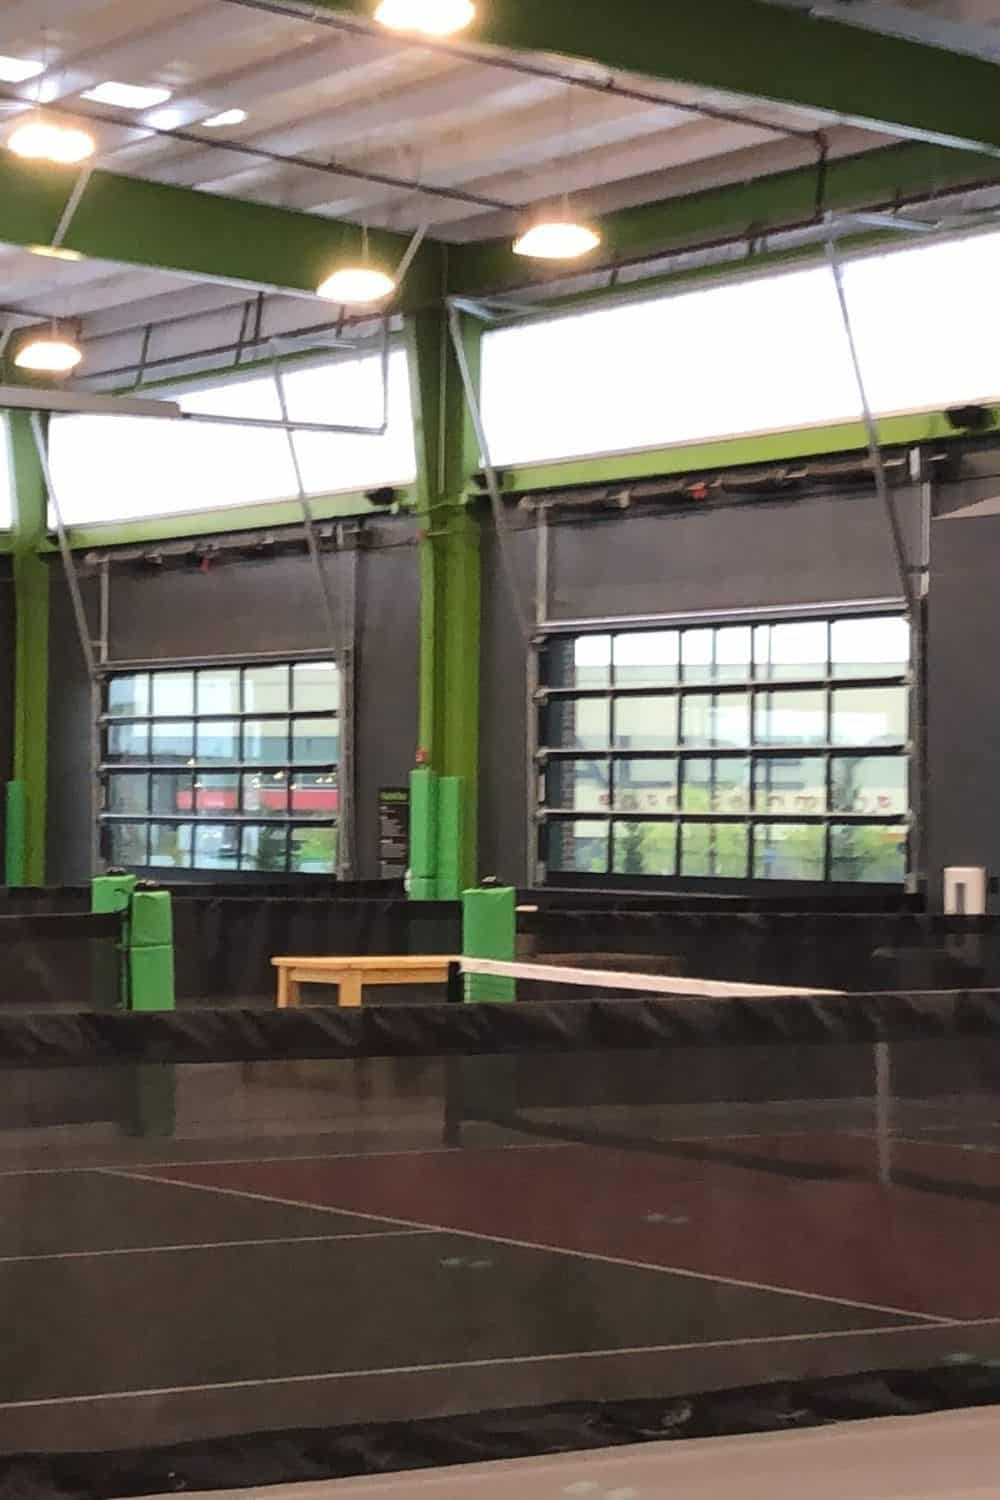 pickleball courts choosing a pickleball paddle for beginners from my travel writing experiences in KCK